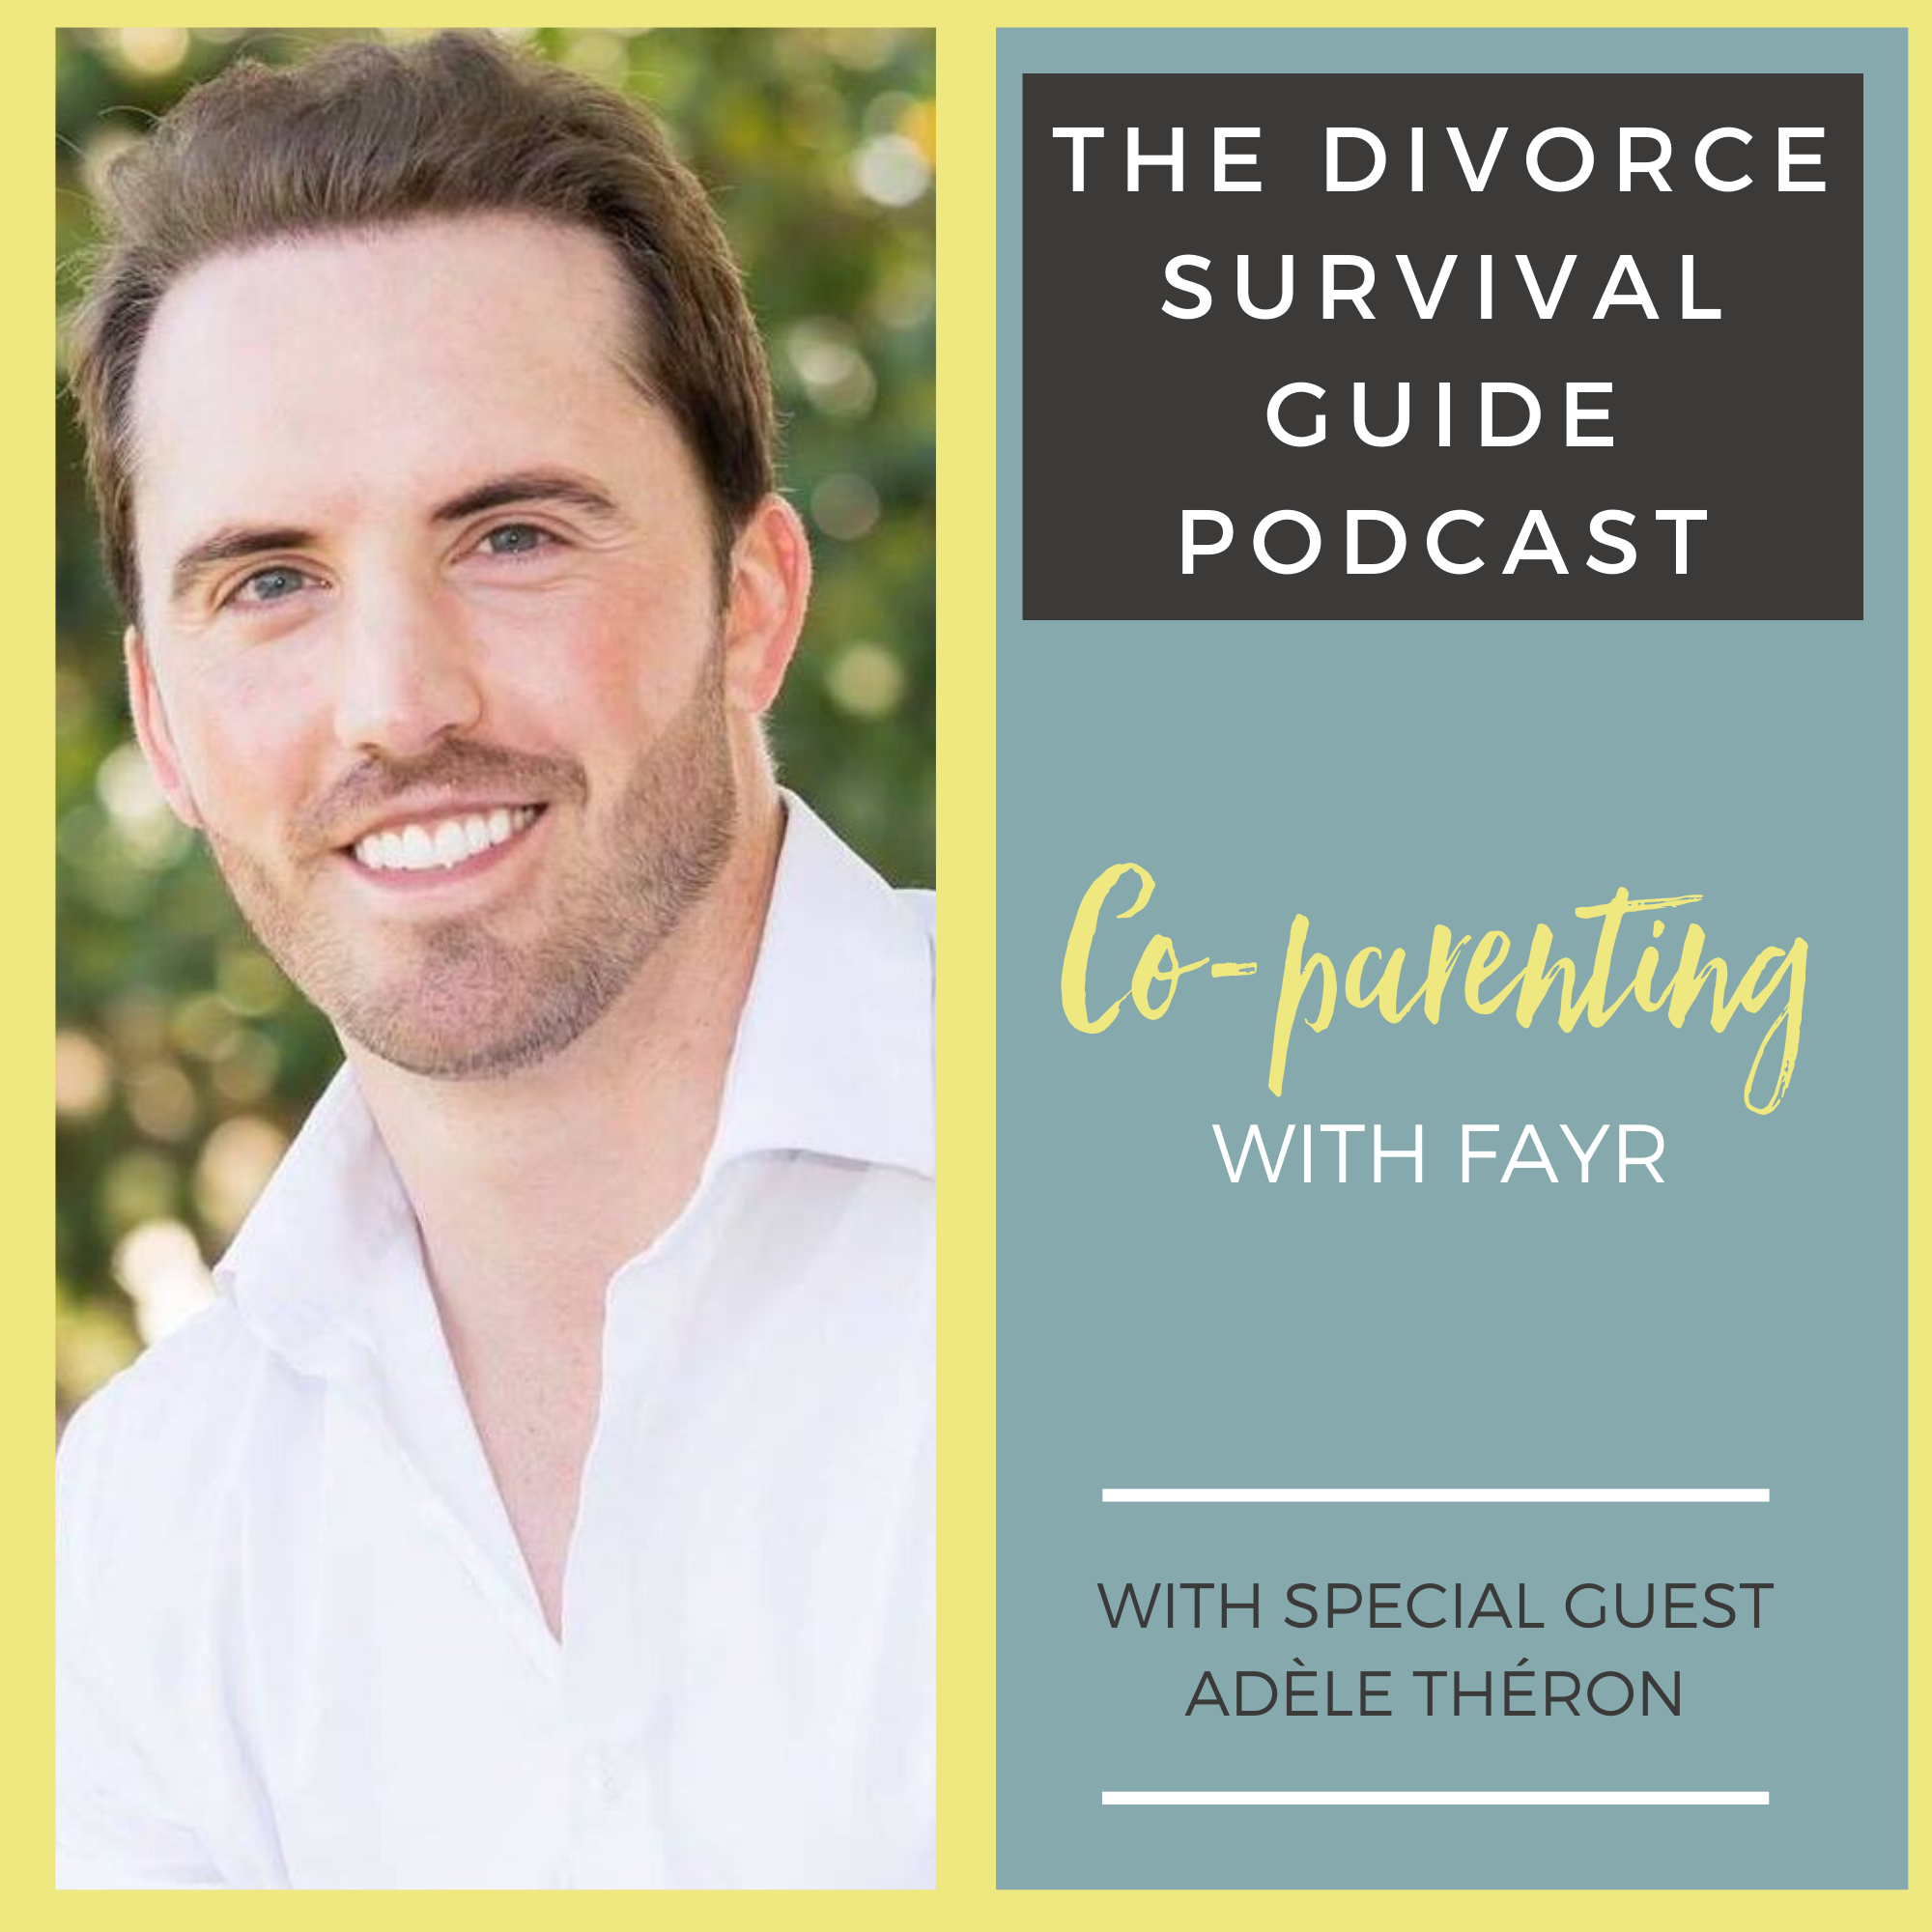 The Divorce Survival Guide Podcast - Co-parenting with FAYR with Michael Daniels